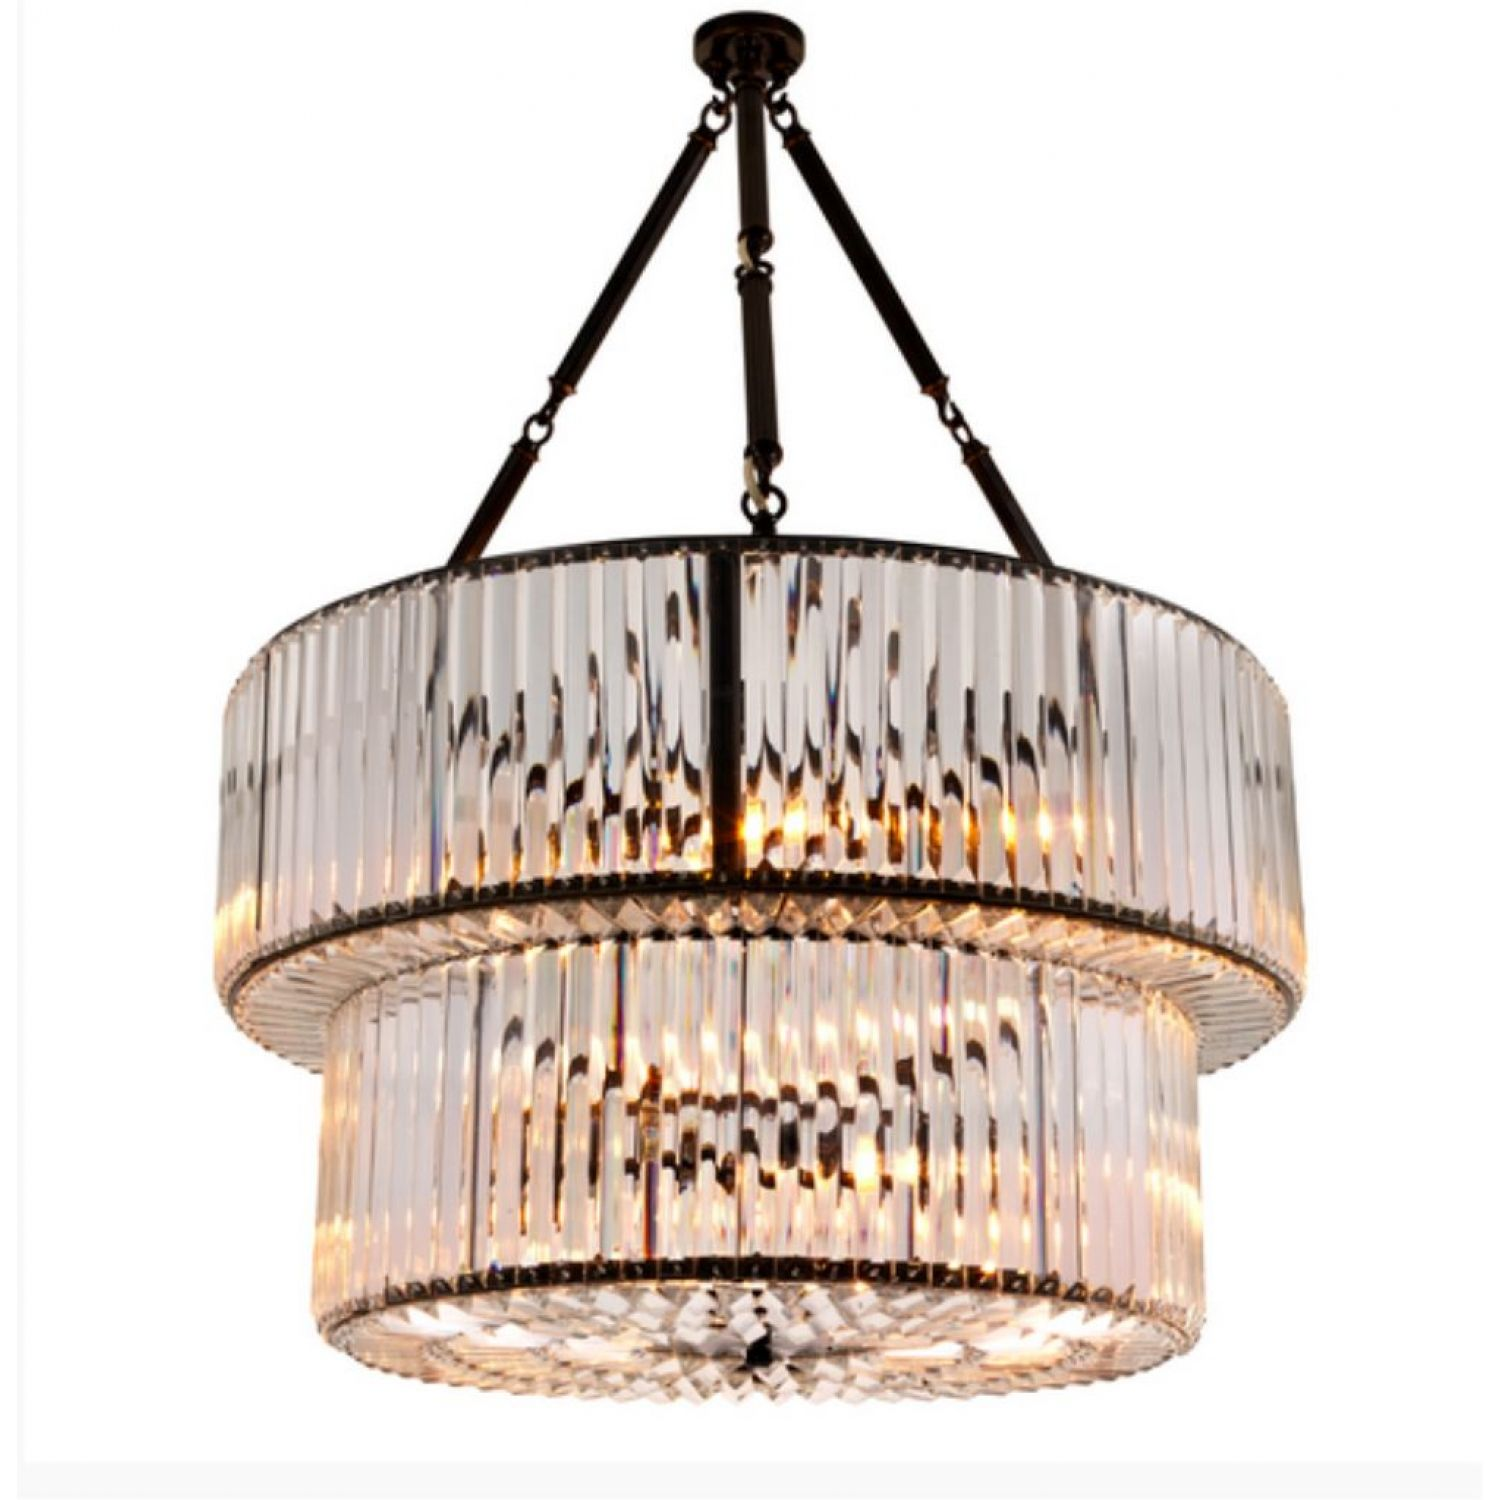 Eichholtz chandelier infinity double home decor bedroom eichholtz chandelier infinity double arubaitofo Choice Image